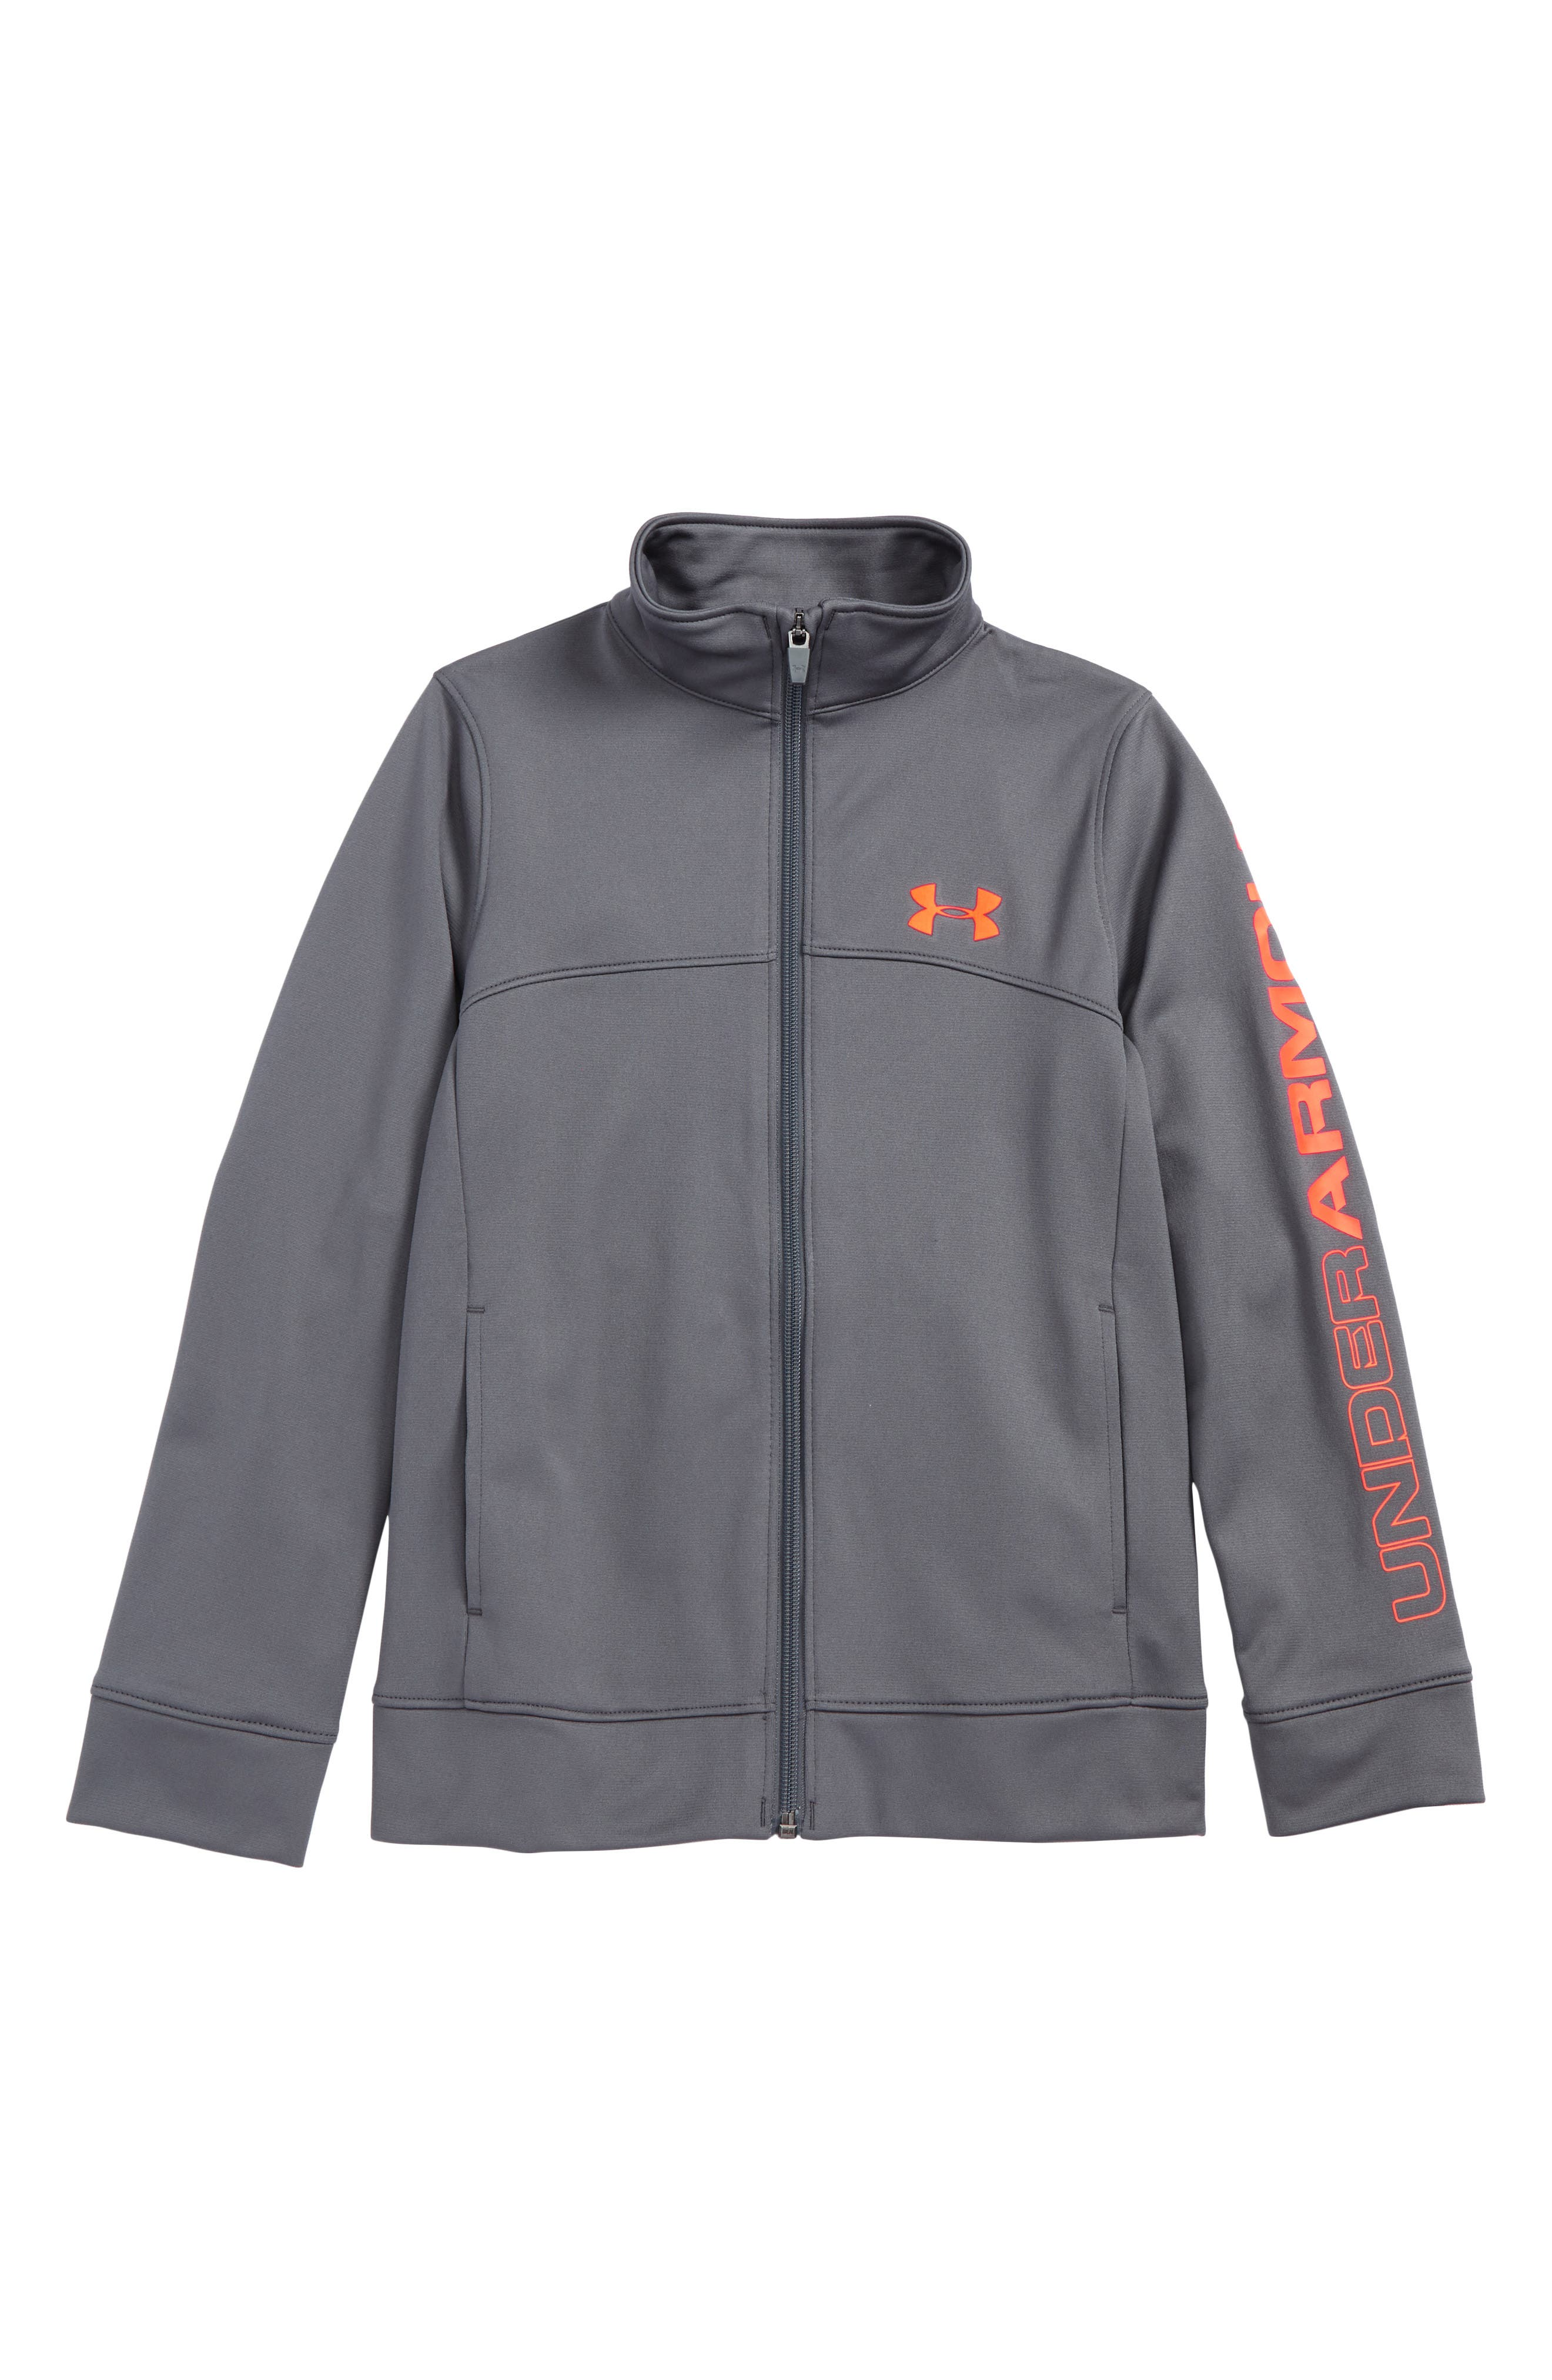 'Pennant' Warm Up Jacket,                         Main,                         color, 020